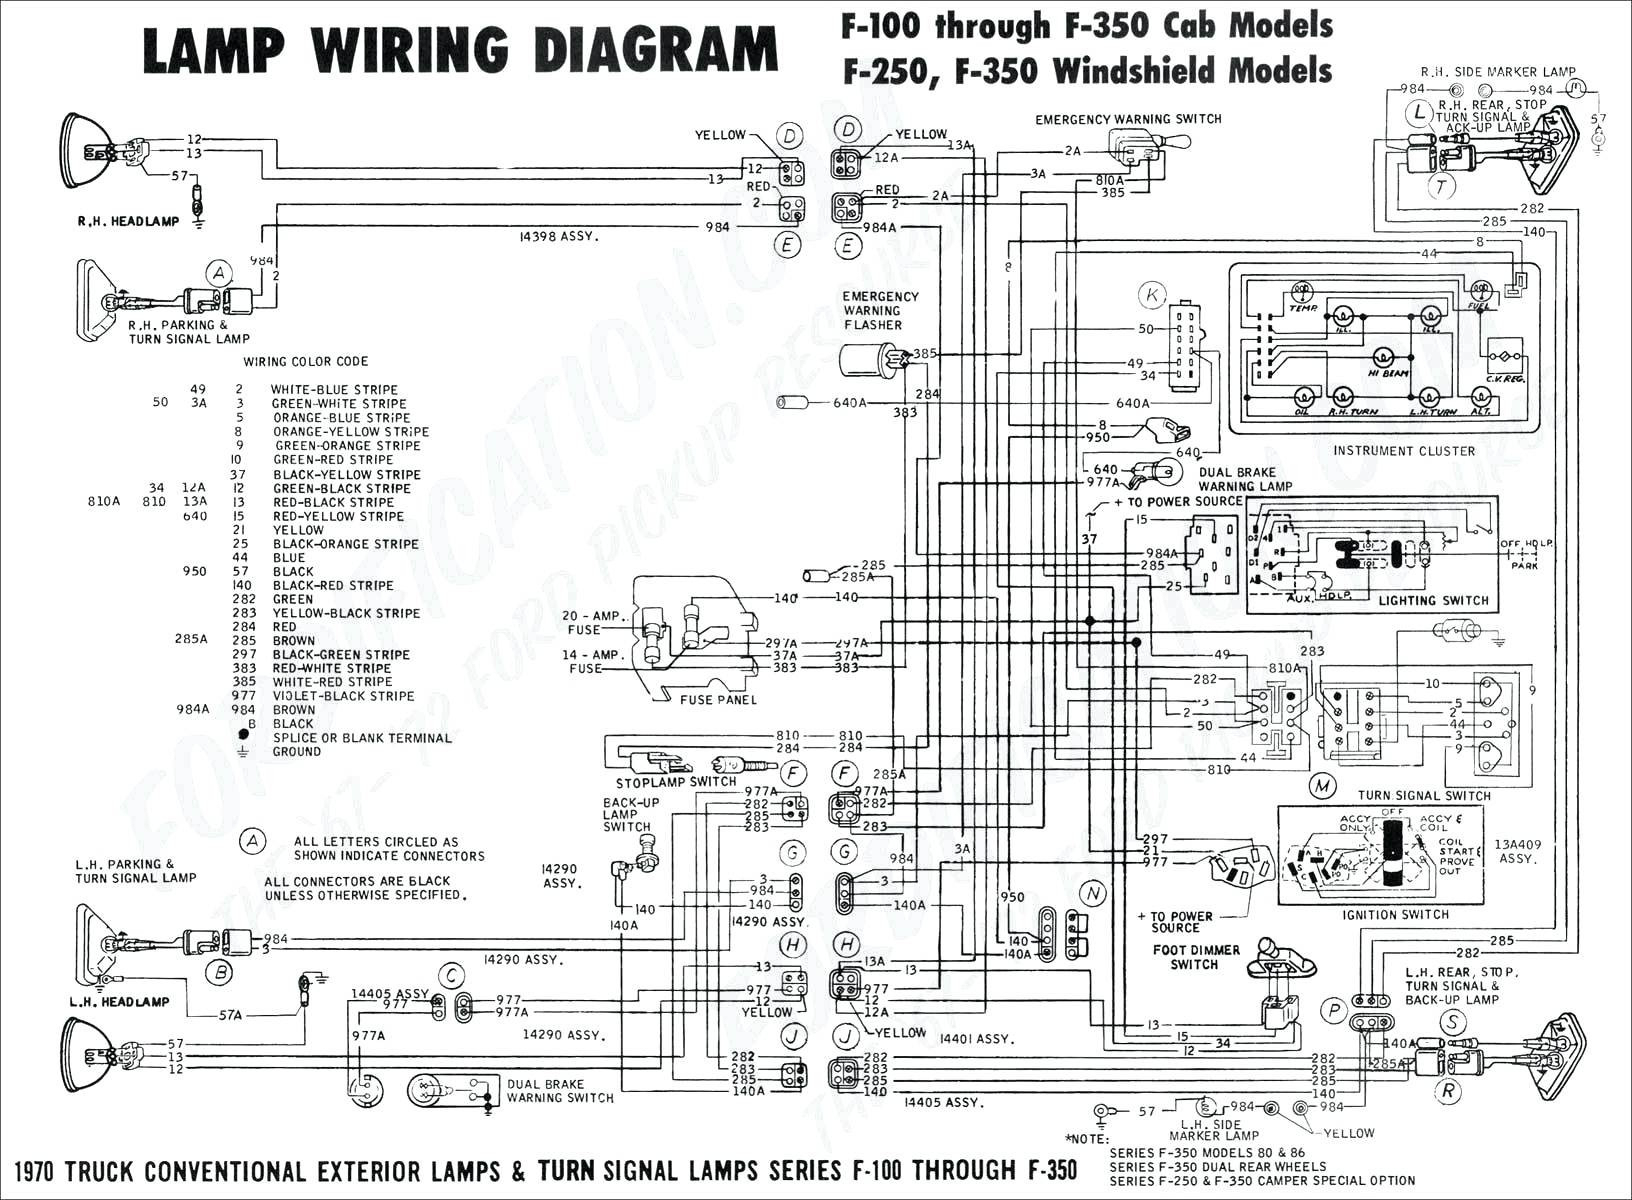 Get 2001 Ford F250 Trailer Wiring Diagram Sample - Basic Trailer Wiring Diagram